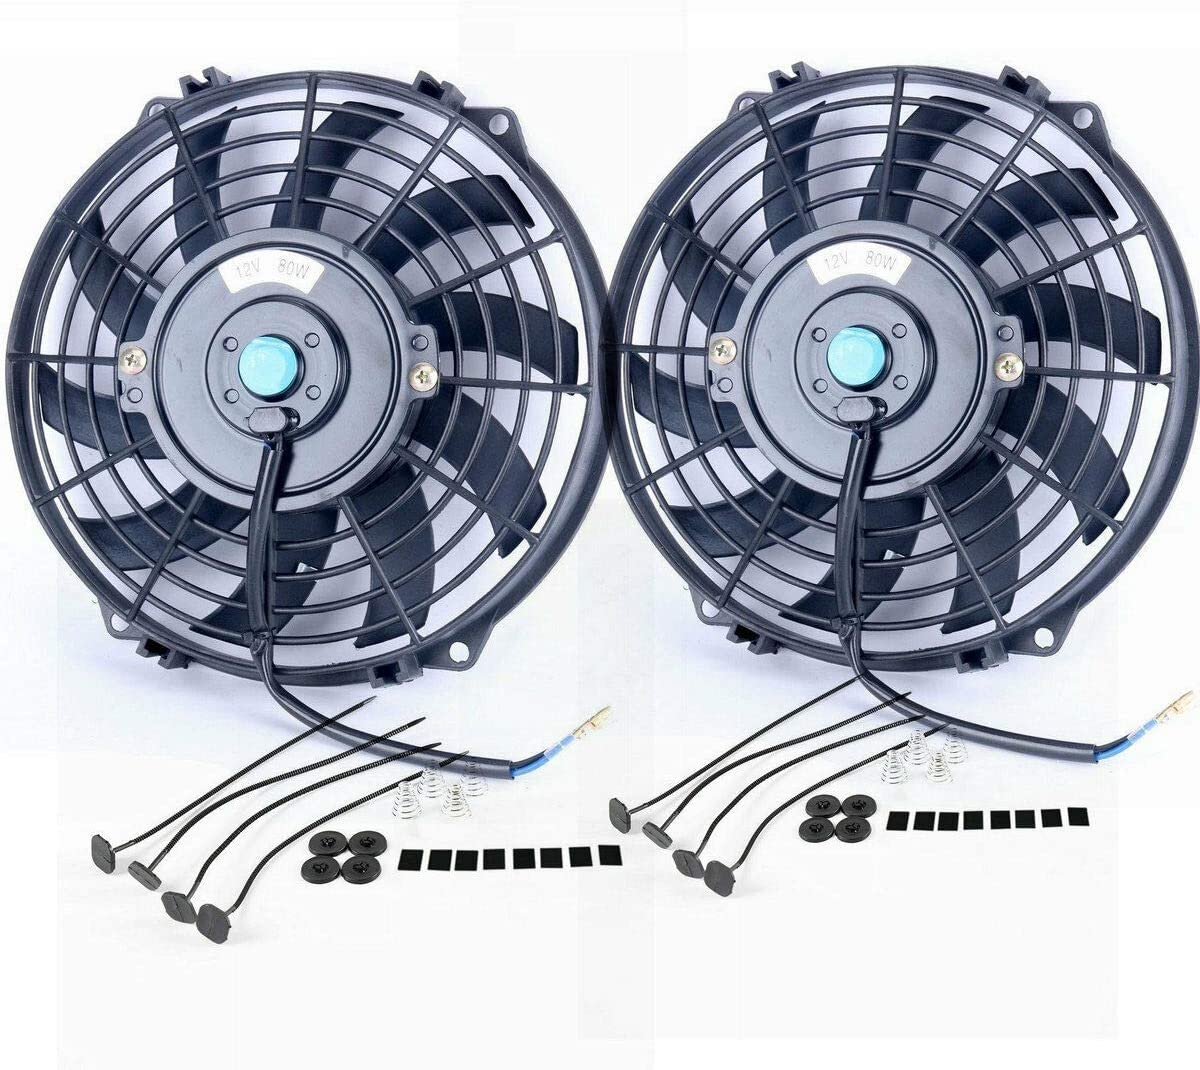 """Upgr8 2 Pack Universal High Performance 12V Slim Electric Cooling Radiator Fan With Fan Mounting Kit (9"""" 2-Pack)"""